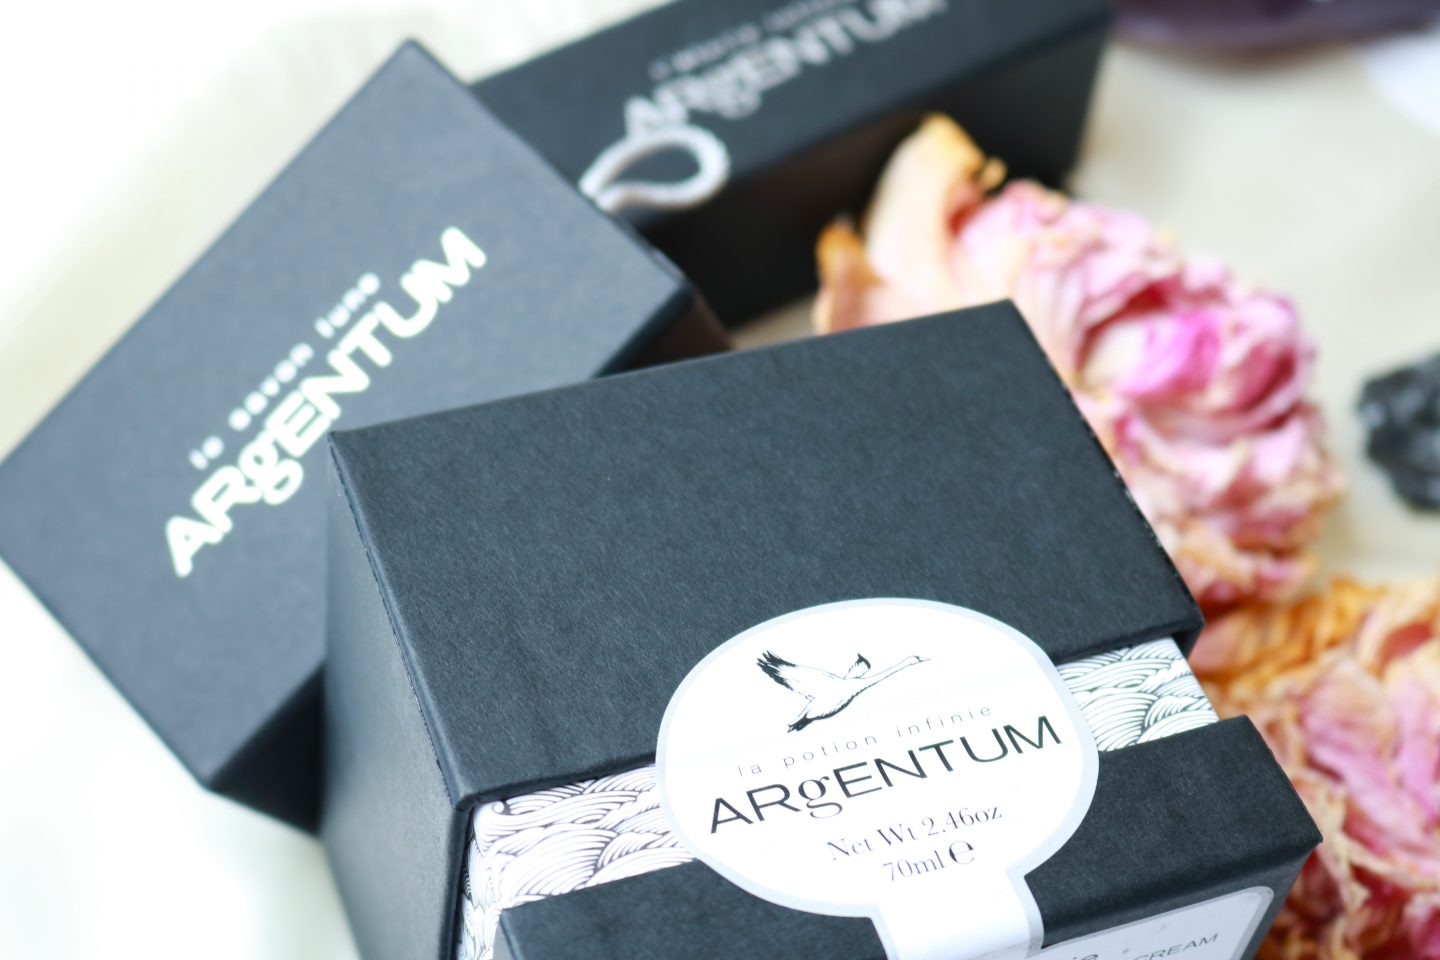 Luxury with ARgENTUM apothecary